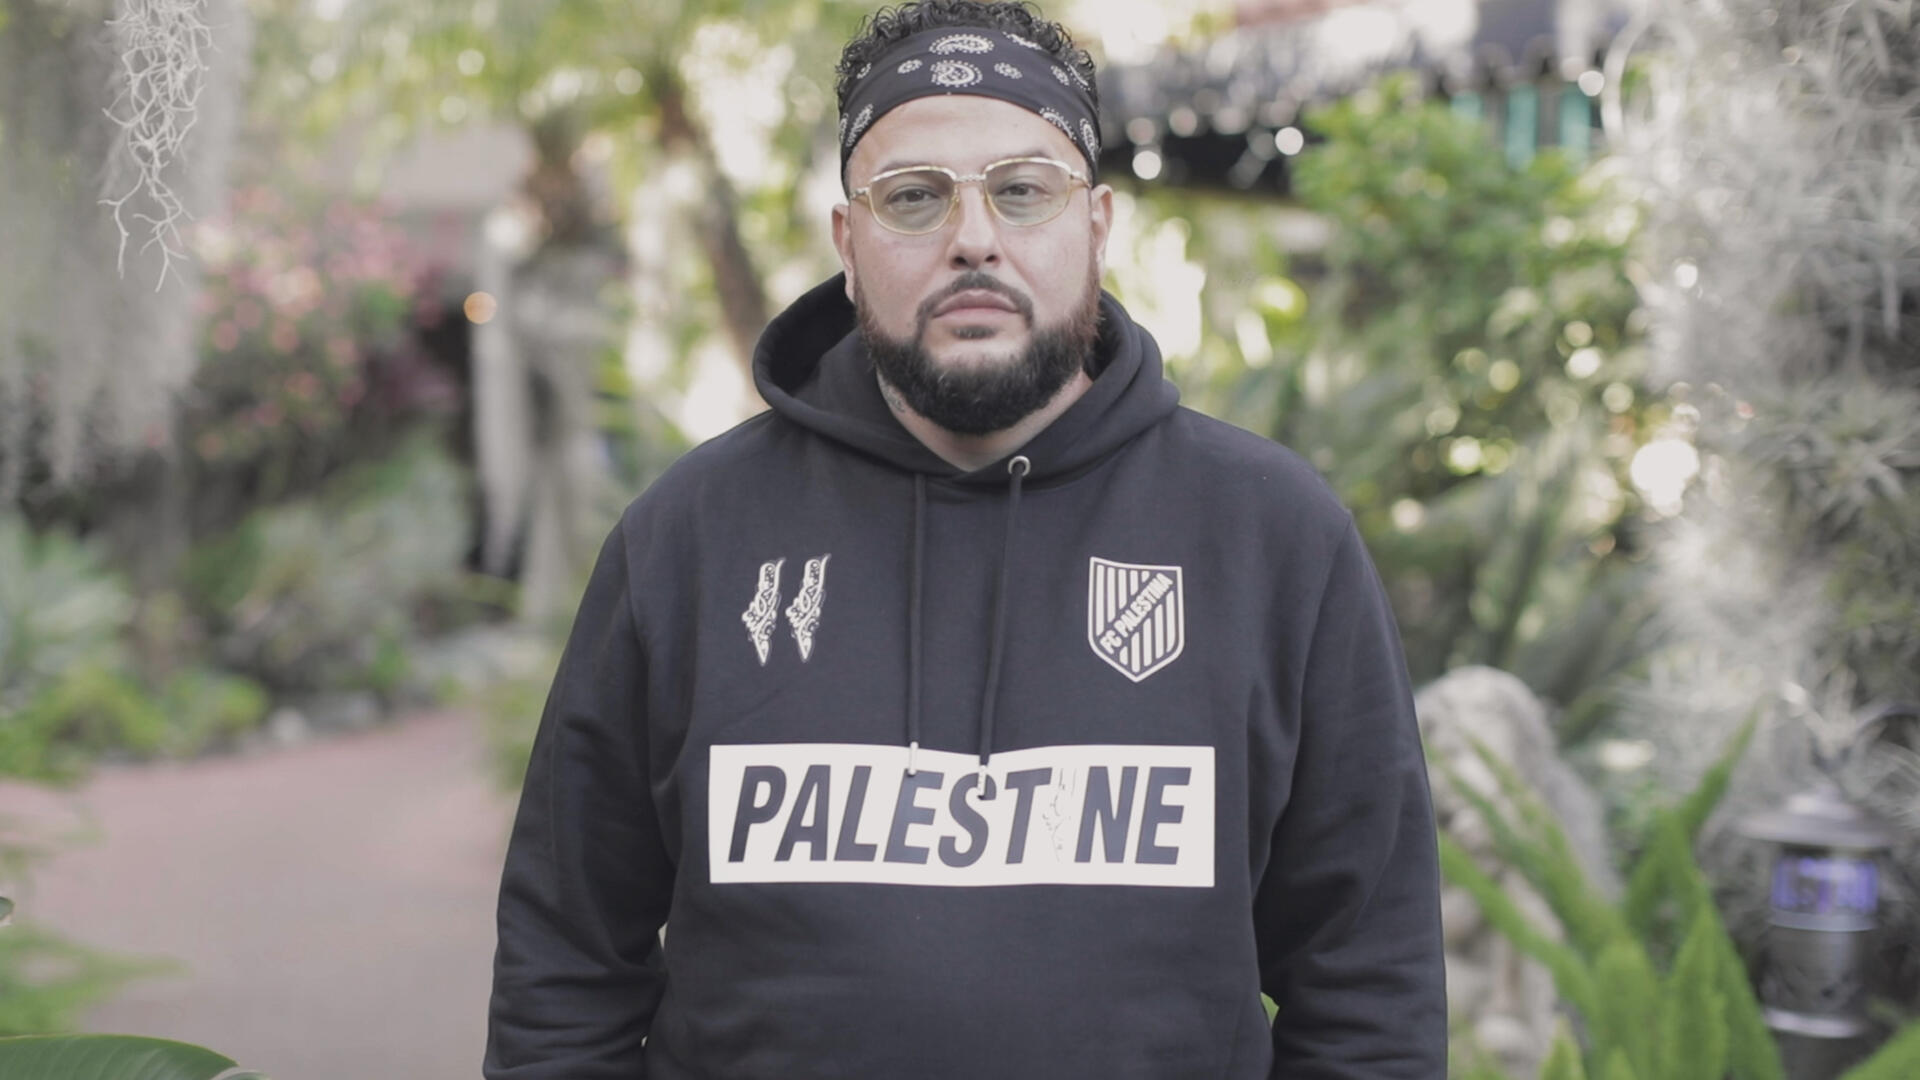 """Rapper, songwriter and record producer Belly stands outside wearing a headband and sweatshirt with the text """"Palestine"""" for a World Refugee Day 2021 photo shoot."""